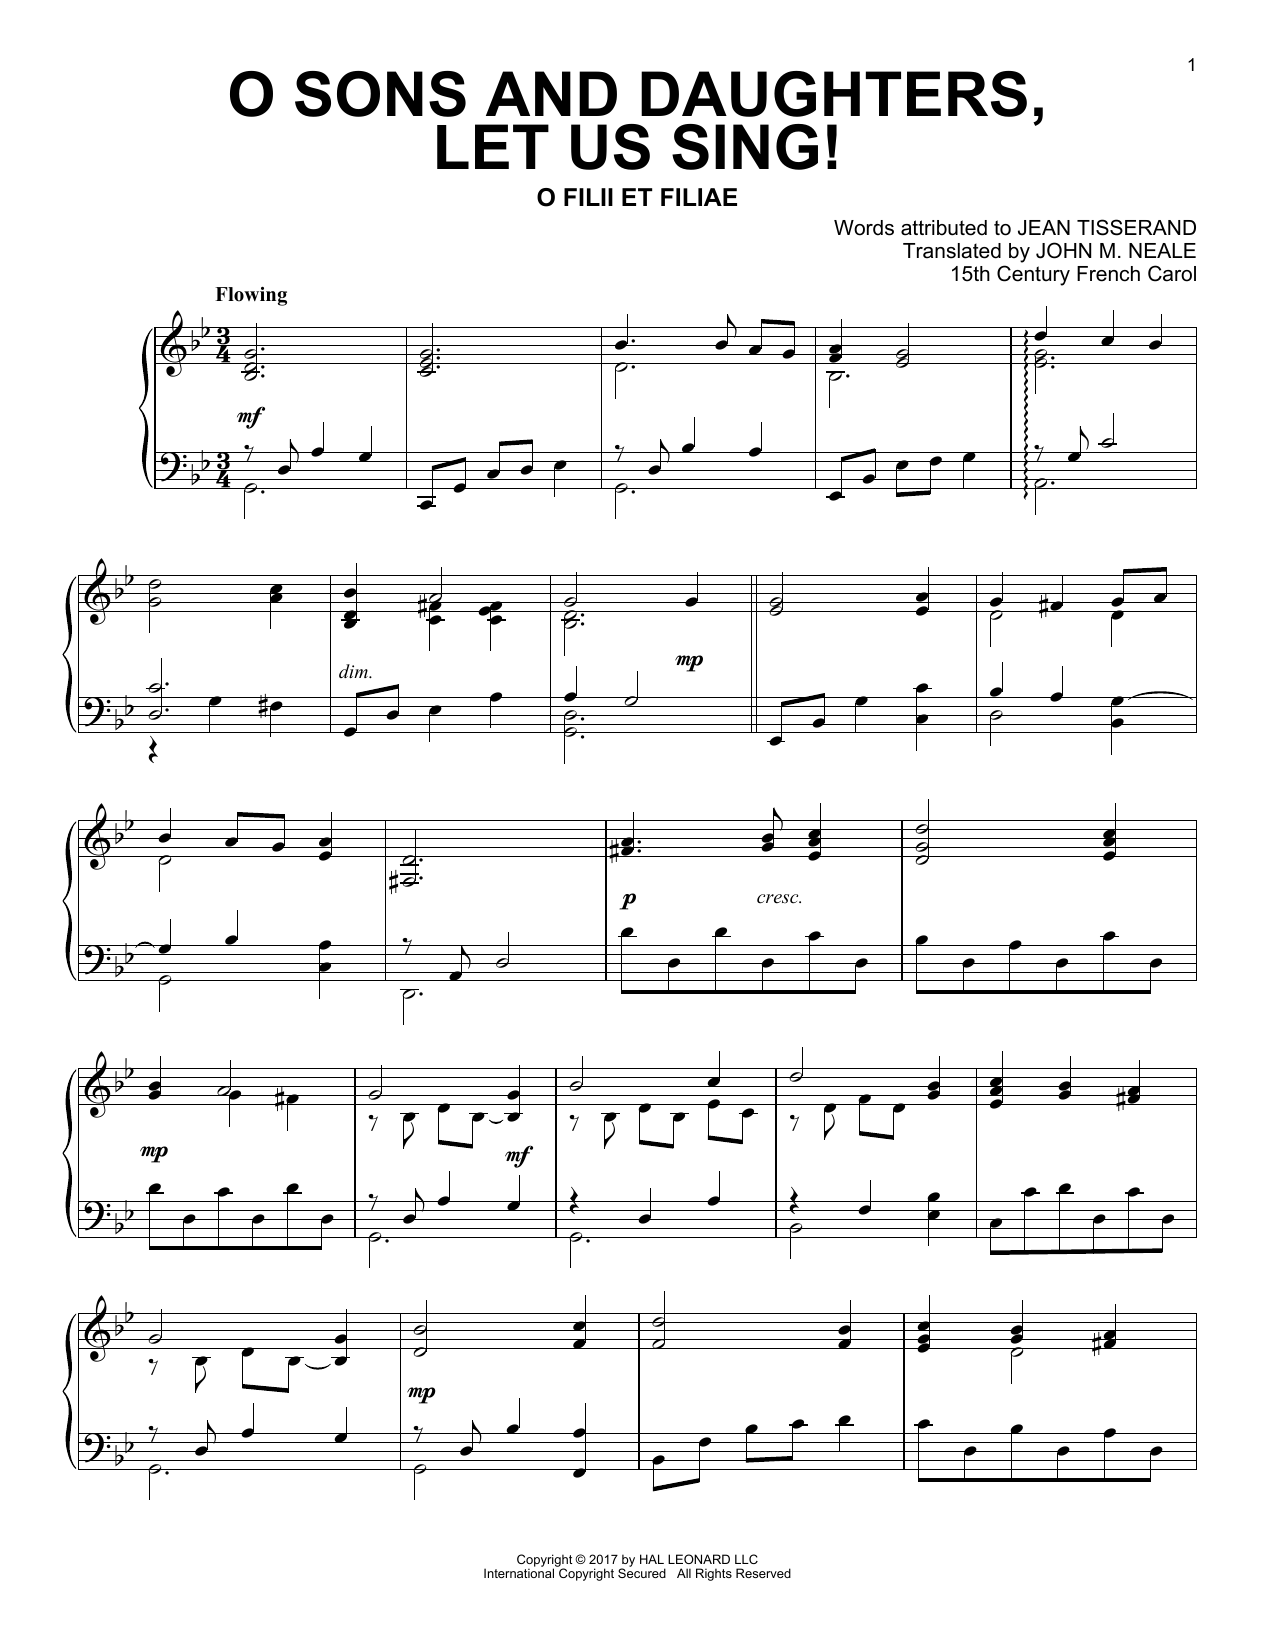 15th Century French Carol O Sons And Daughters, Let Us Sing! sheet music notes and chords. Download Printable PDF.